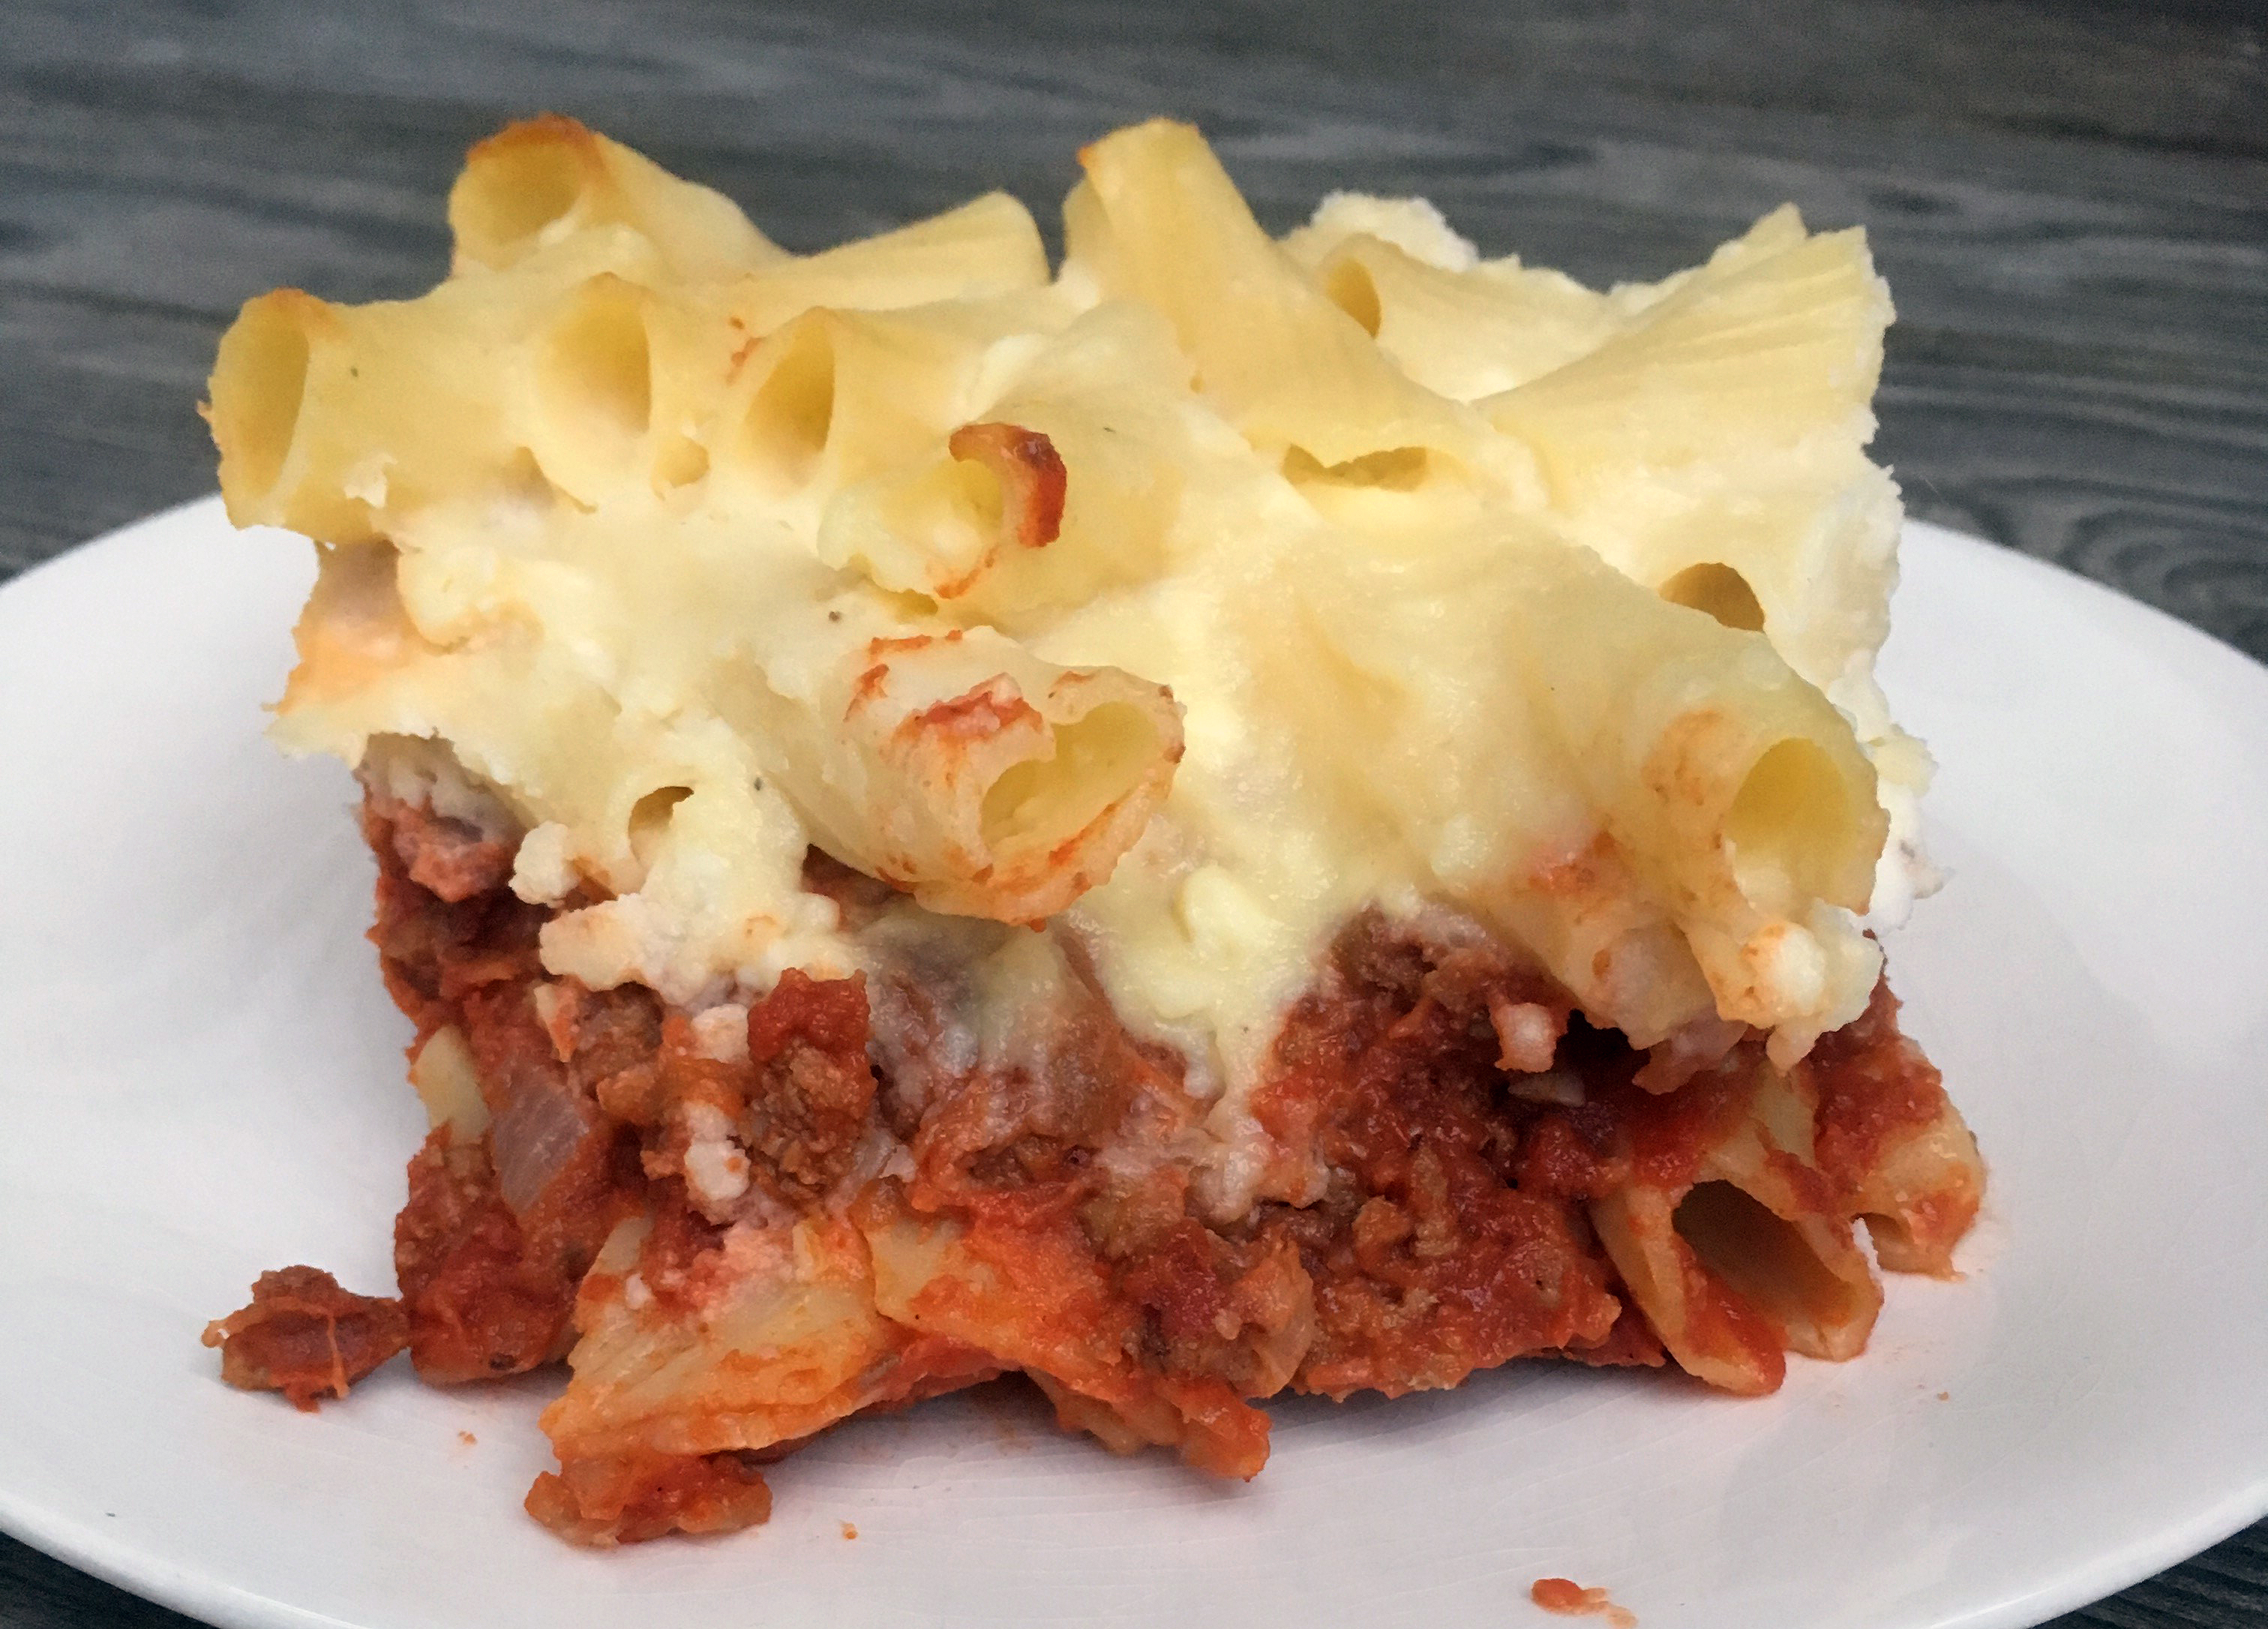 Spiced ground lamb with roasted eggplant, tomato sauce, and penne pasta is topped with a layer of rich, feta cheese sauce mixed with penne and baked to make this twist on the traditional Greek dish. Similar to lasagna, it might require a bit of effort but your family will thank you!